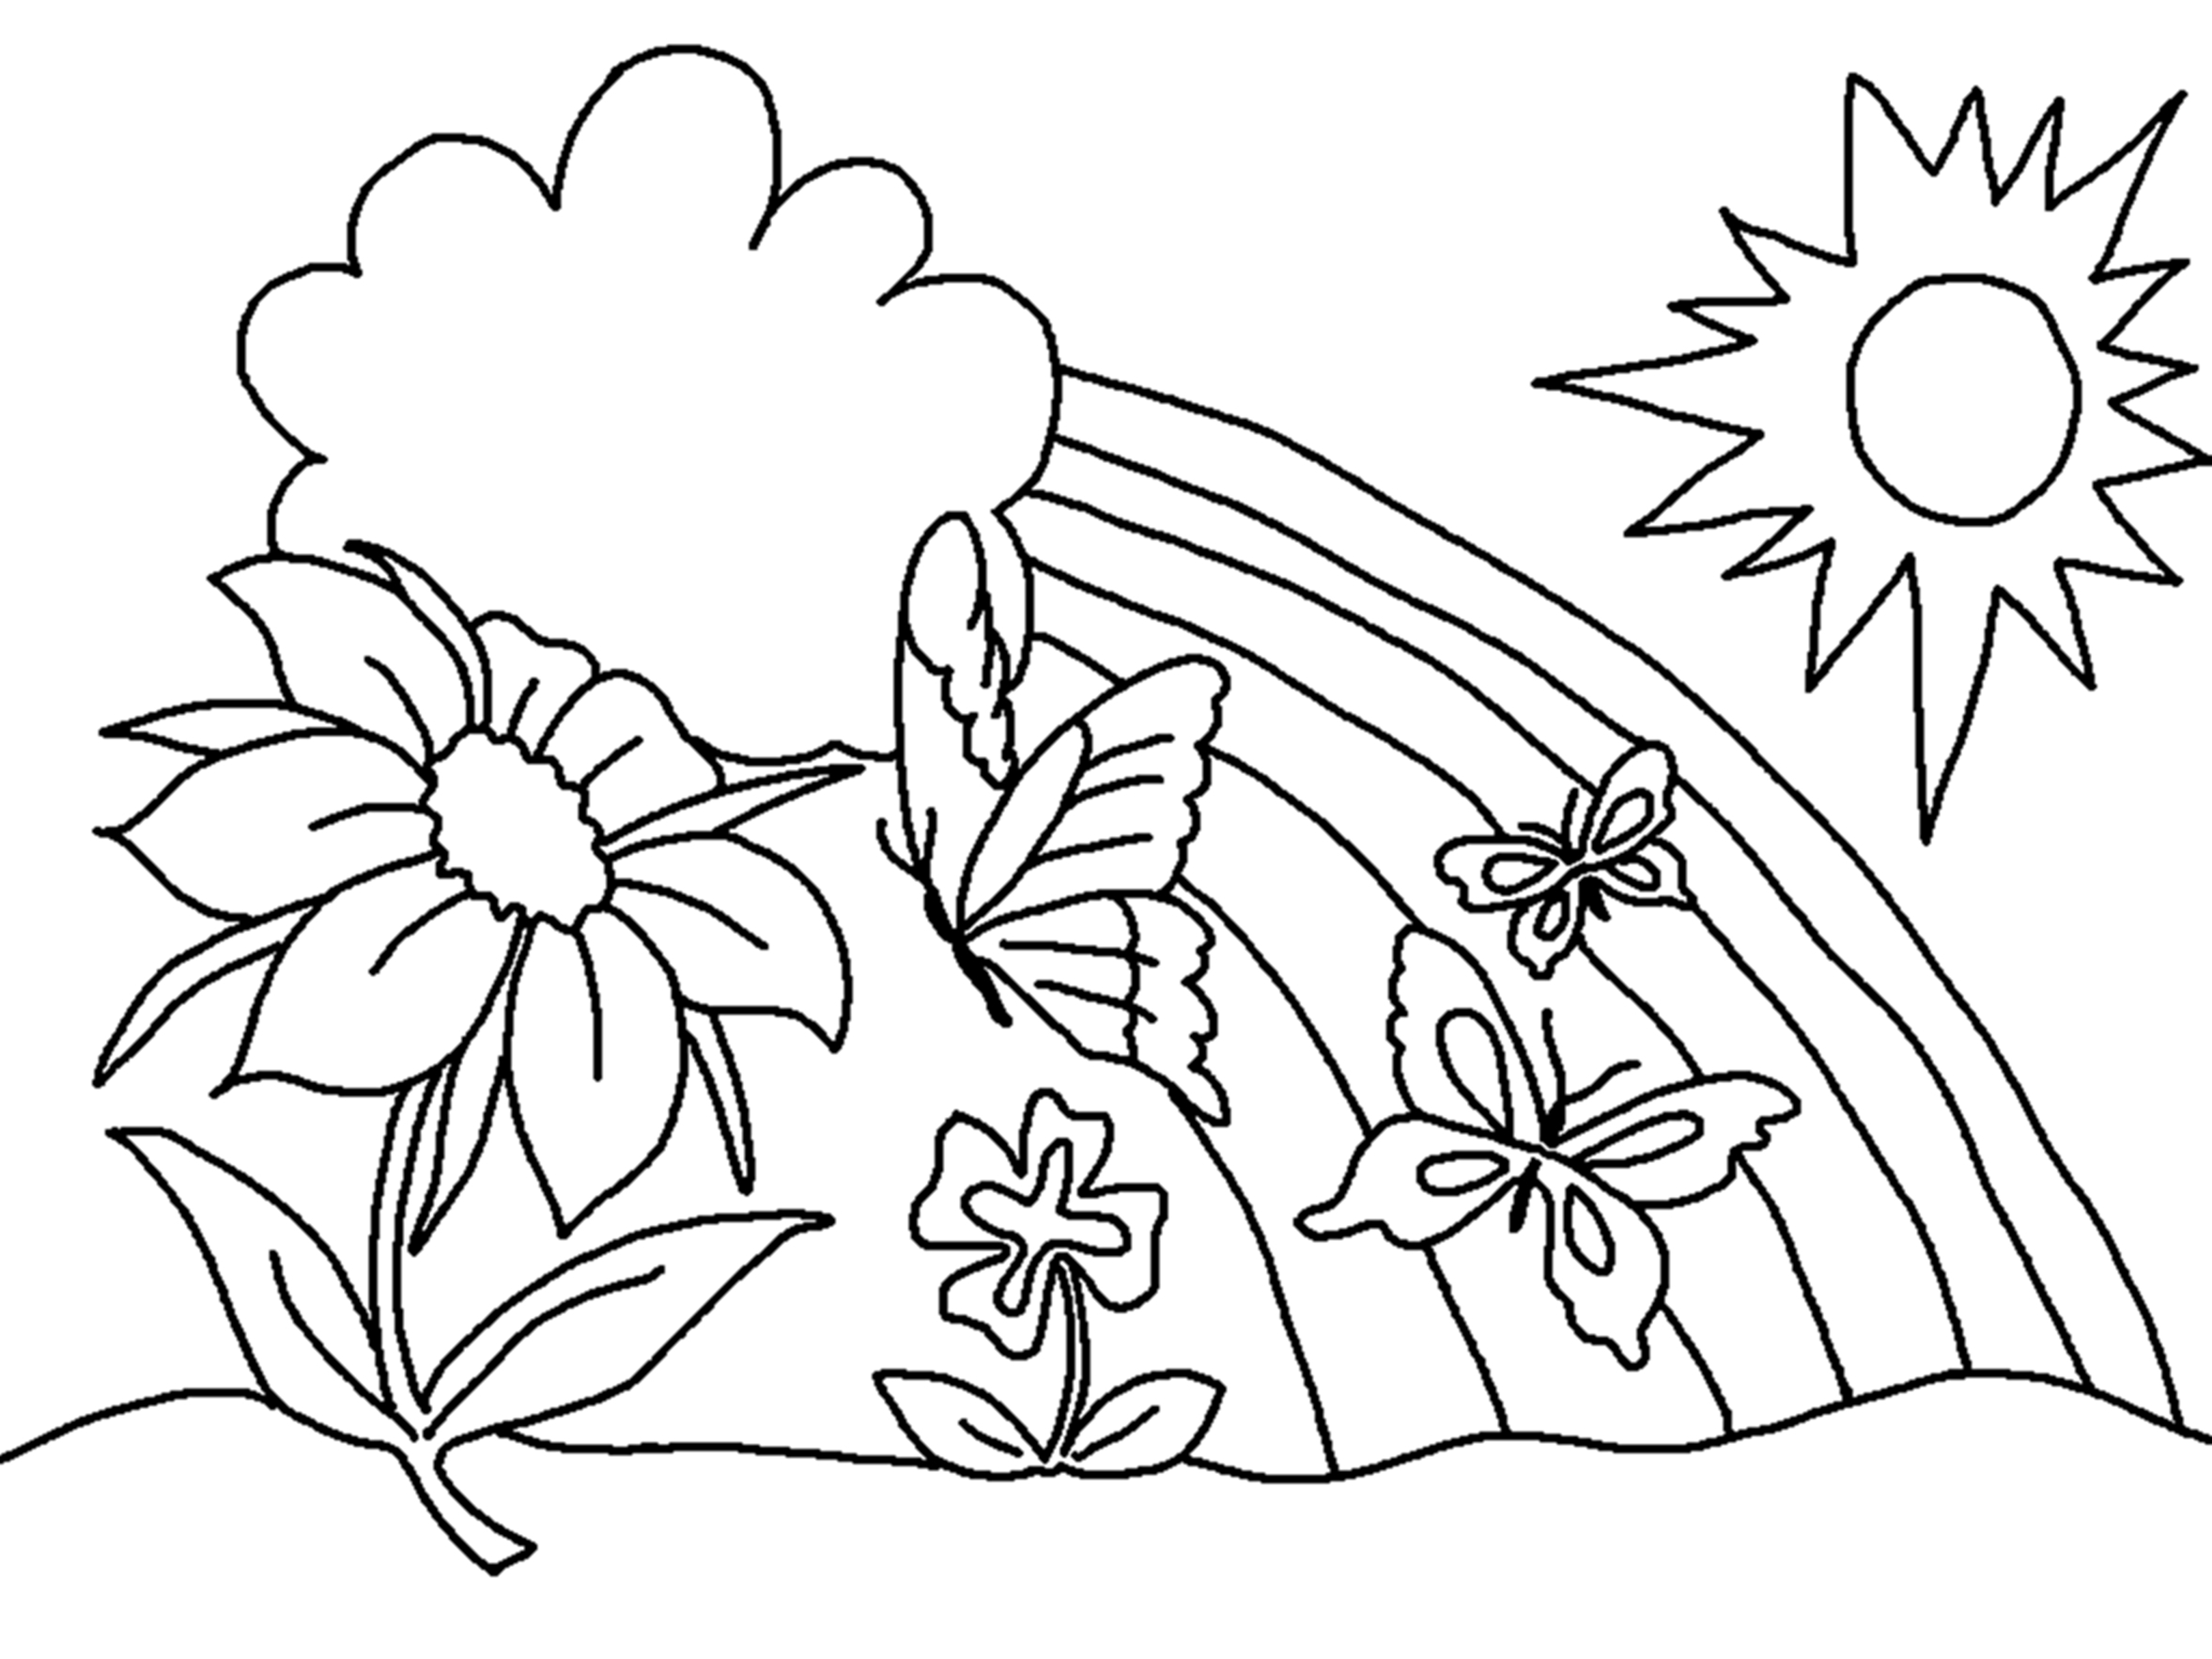 free printable flowers to color free easy to print flower coloring pages tulamama to flowers printable color free